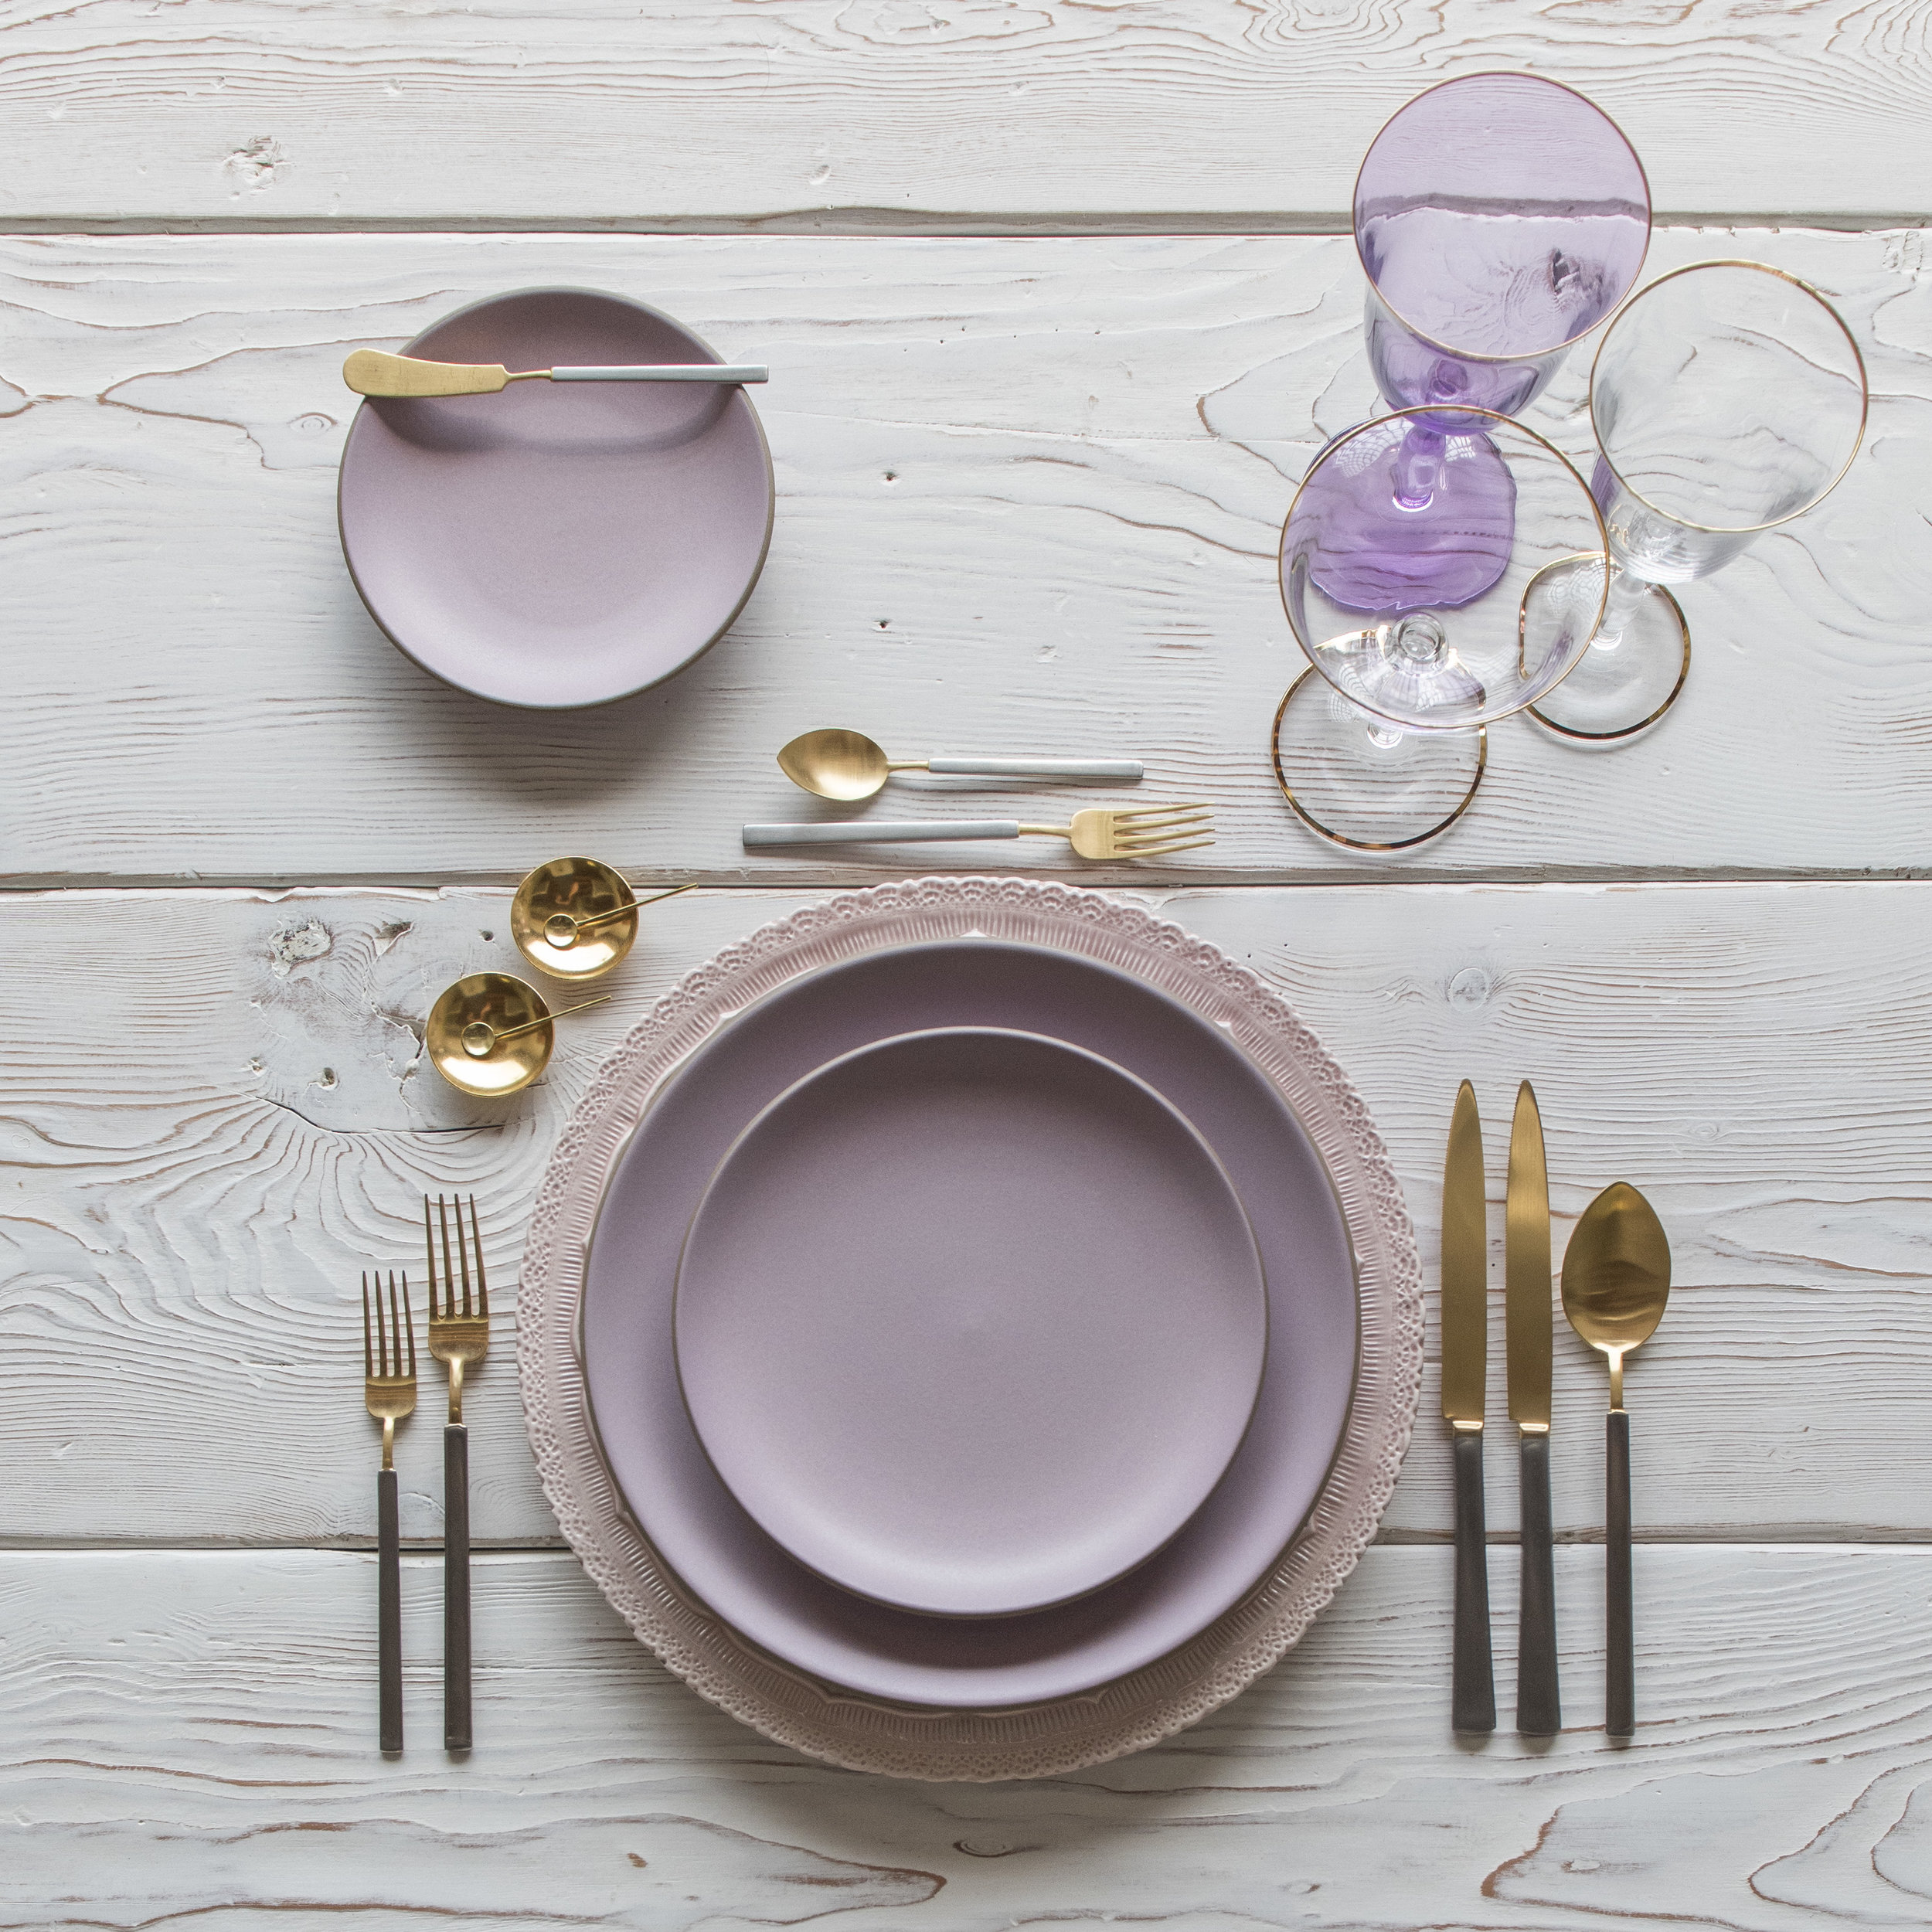 RENT: Lace Chargers in Blush + Custom Heath Ceramics in Wildflower + Axel Flatware in Matte 24k Gold/Silver + Chloe 24k Gold Rimmed Stemware + Chloe 24k Gold Rimmed Goblet in Lilac + 14k Gold Salt Cellars + Tiny Gold Spoons  SHOP:Chloe 24k Gold Rimmed Stemware + 14k Gold Salt Cellars + Tiny Gold Spoons